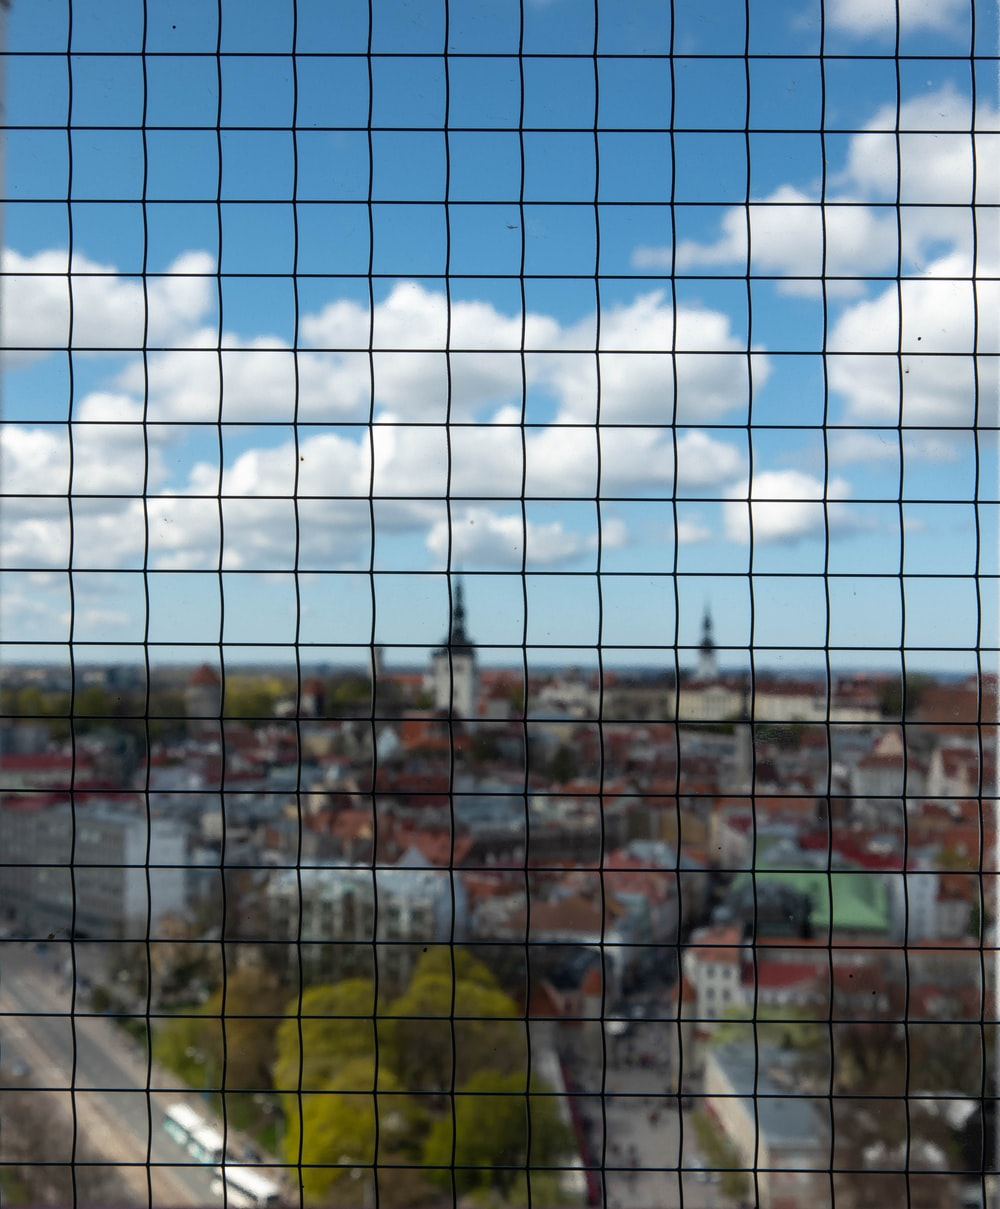 town through wire screen